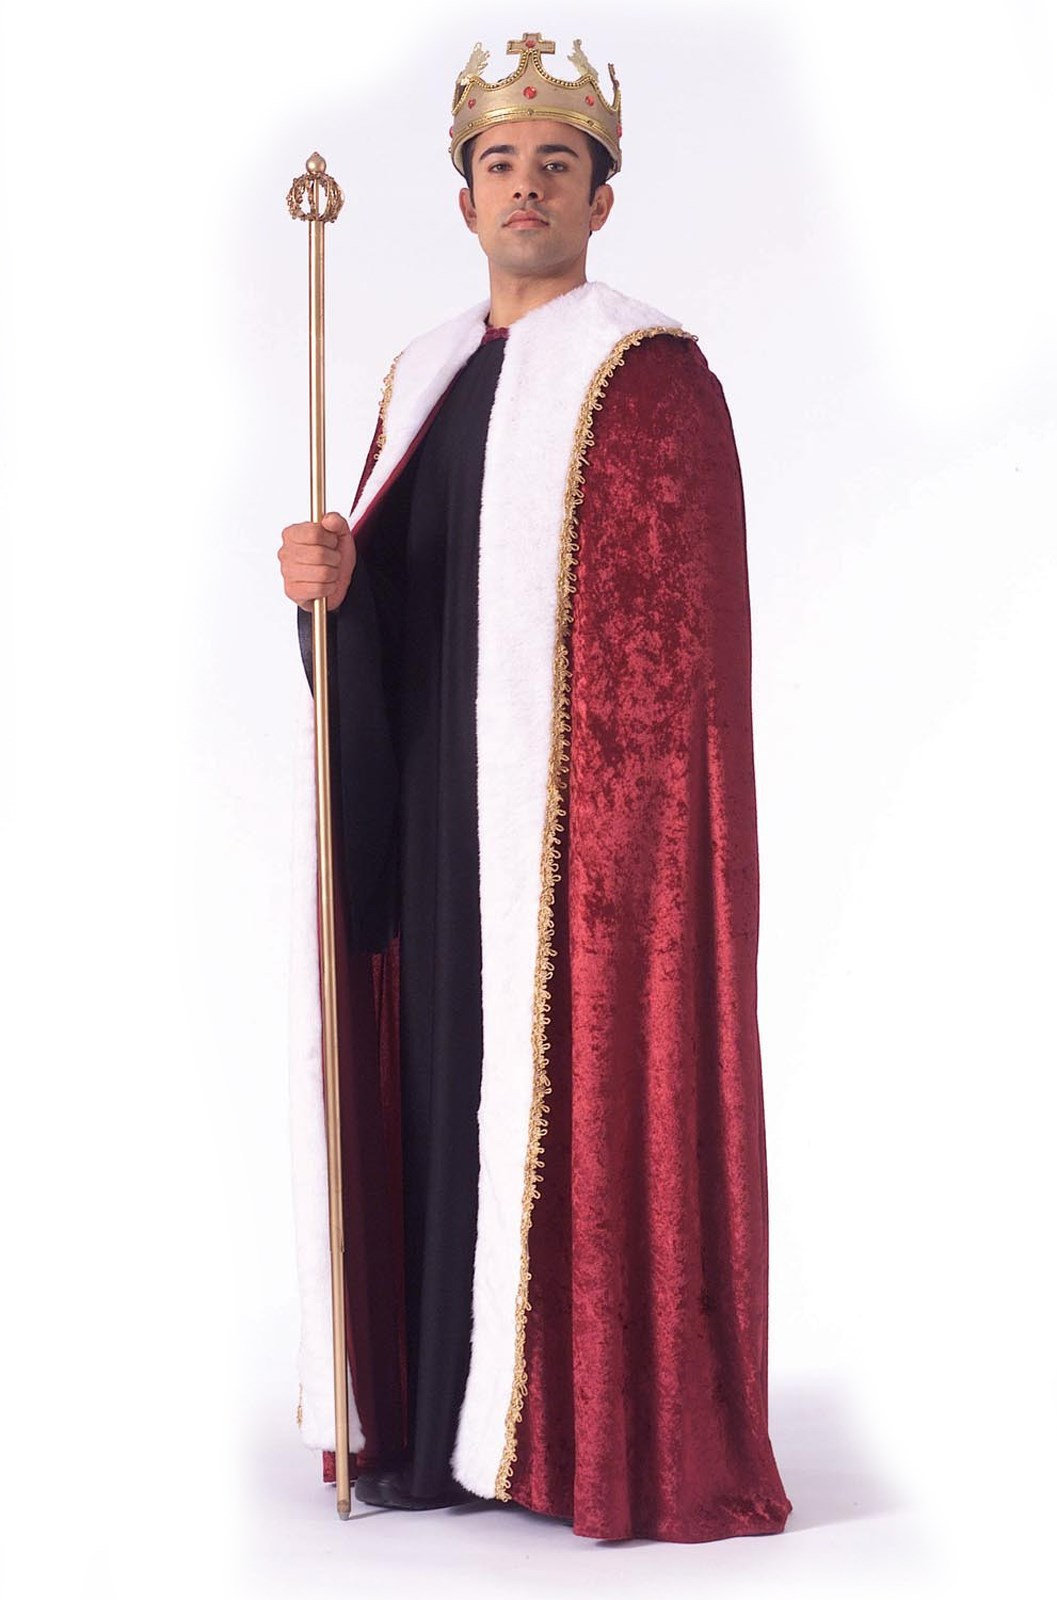 Image of King Robe Adult Costume